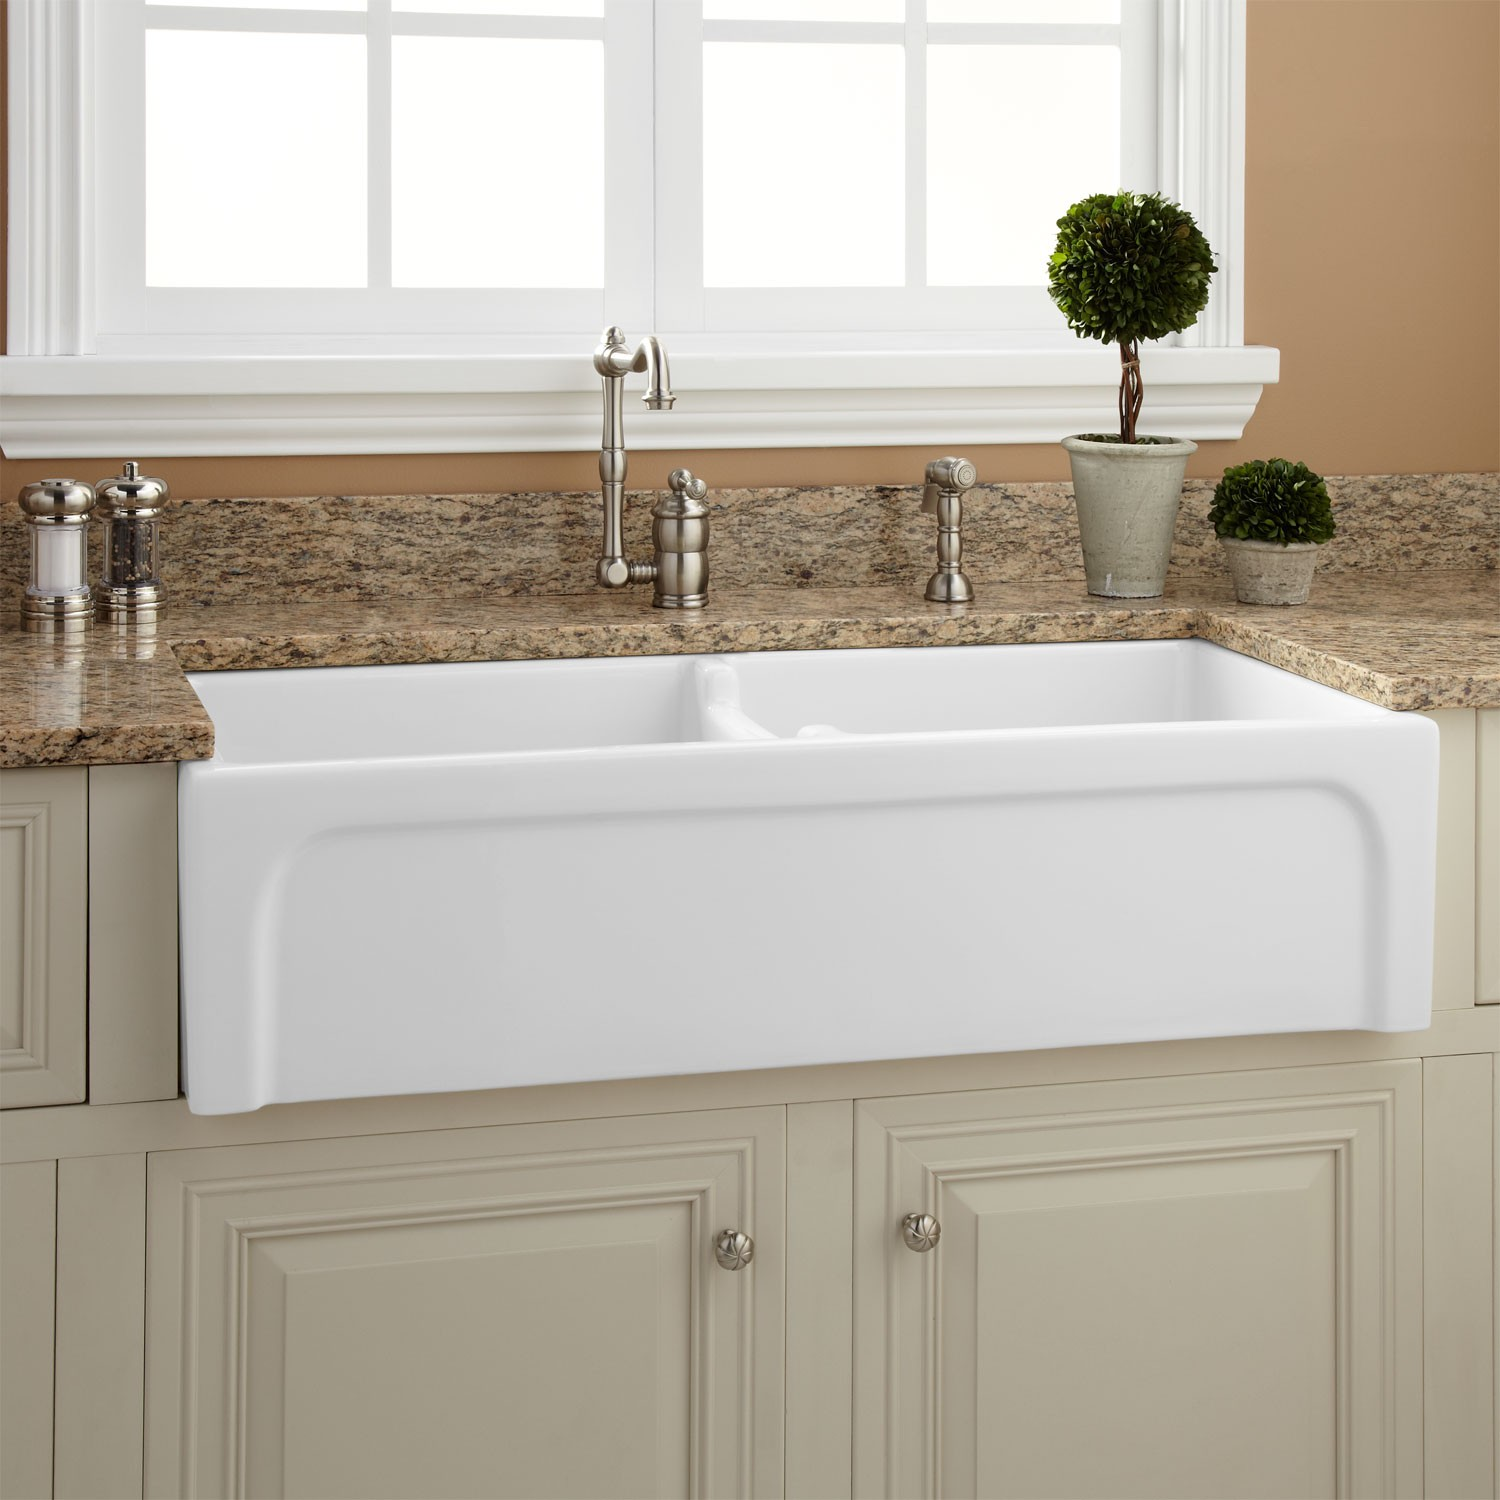 white rectangle porcelain apron sink on cream kitchen cabinet with countertop plus silver sink under the white window for kitchen decor ideas